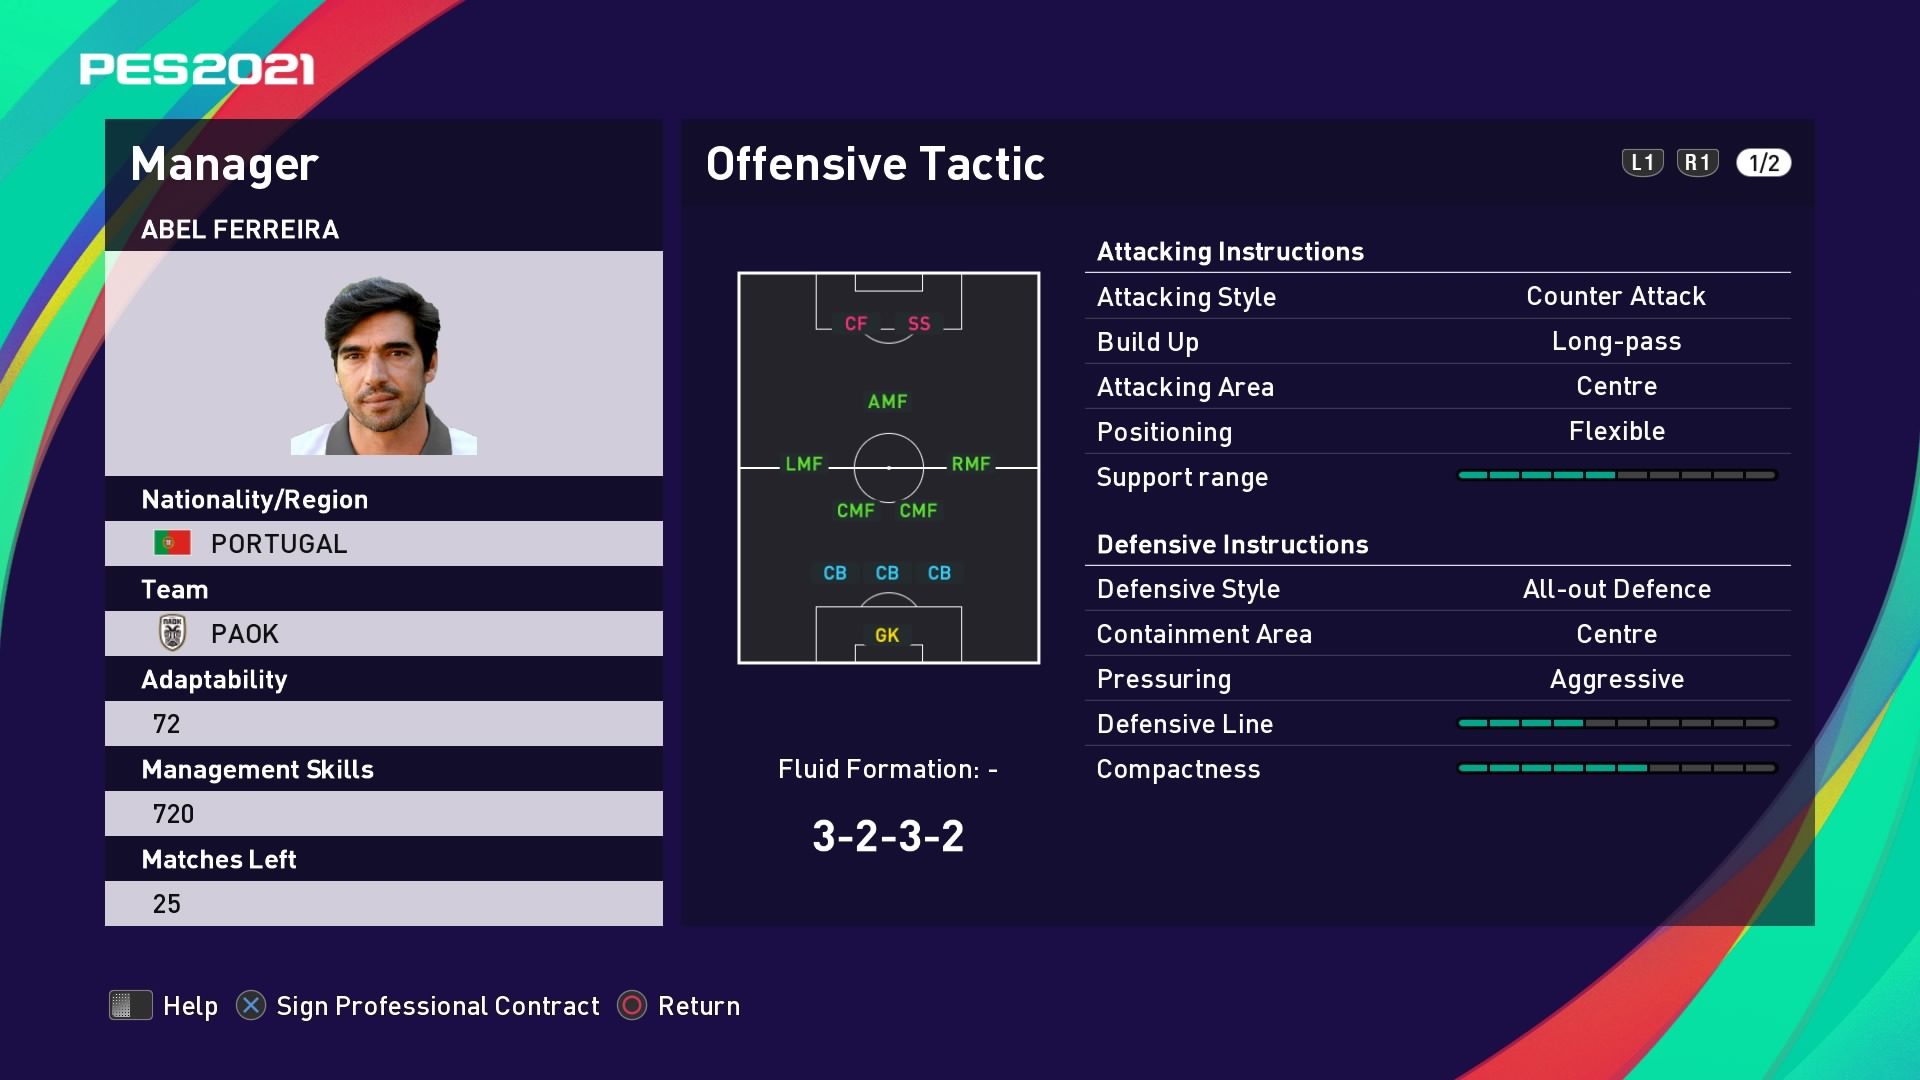 Abel Ferreira Offensive Tactic in PES 2021 myClub